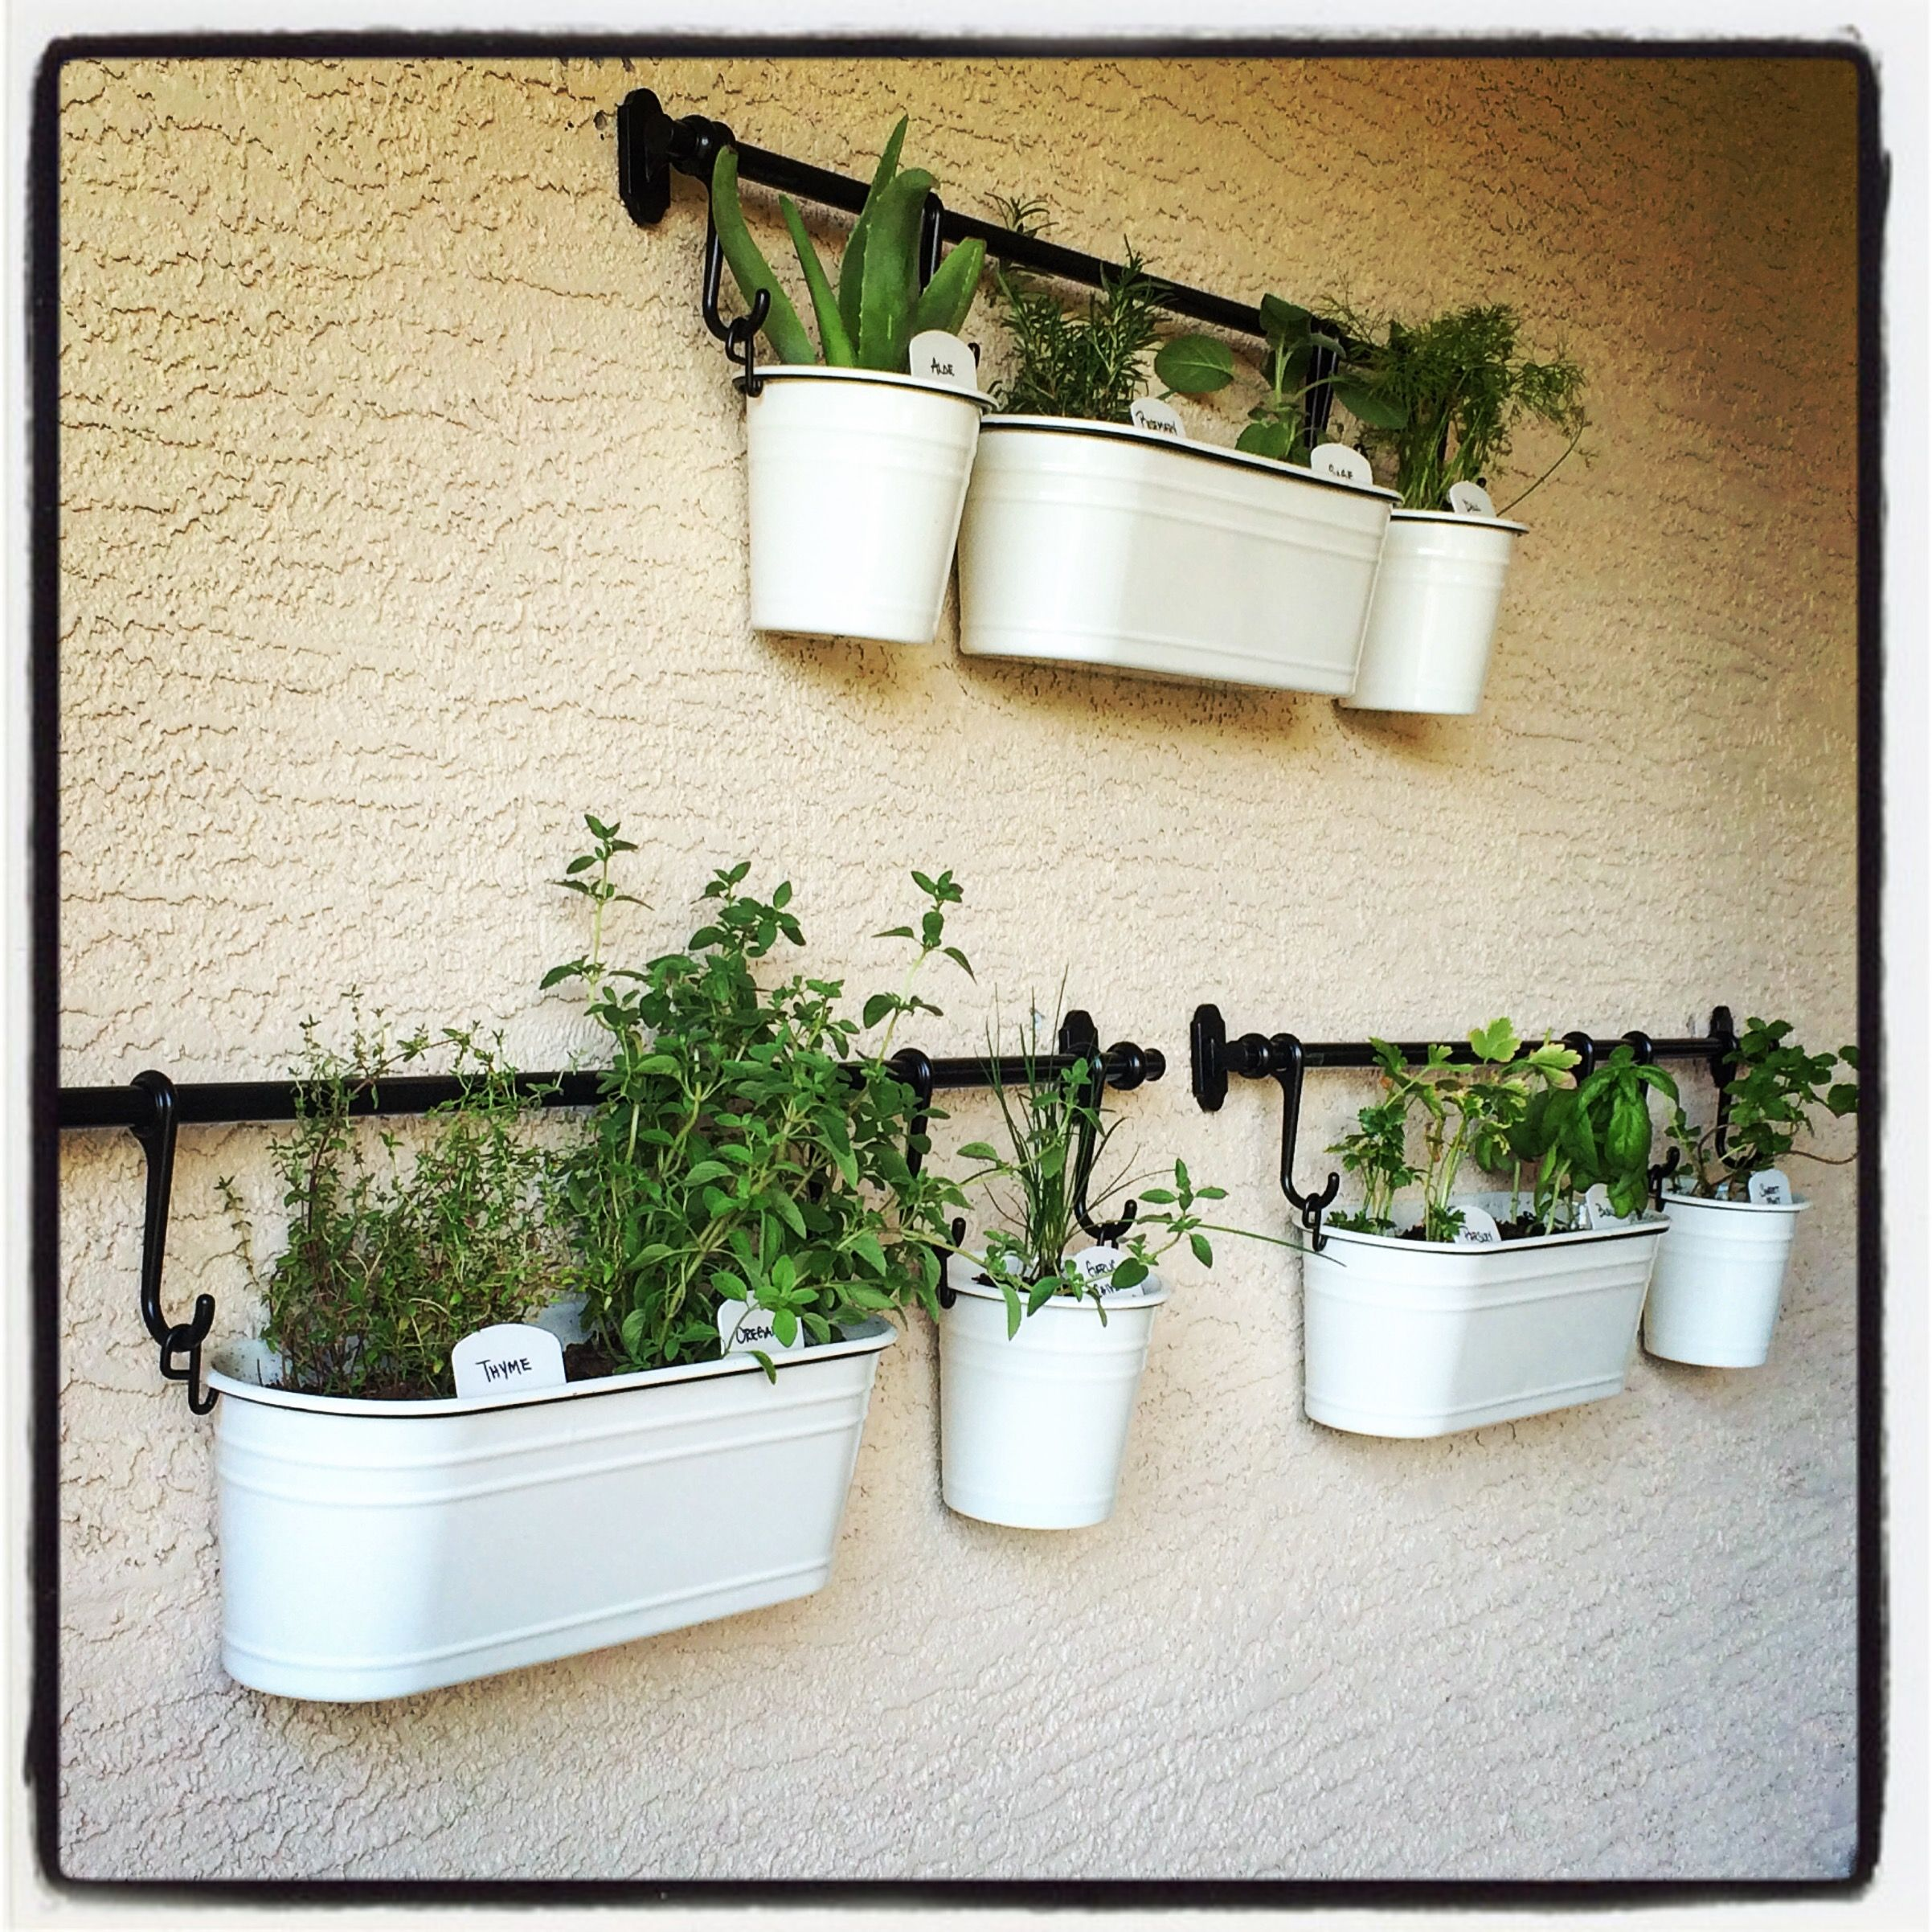 My Patio Herb Garden Made using the IKEA Fintorp line Super cute